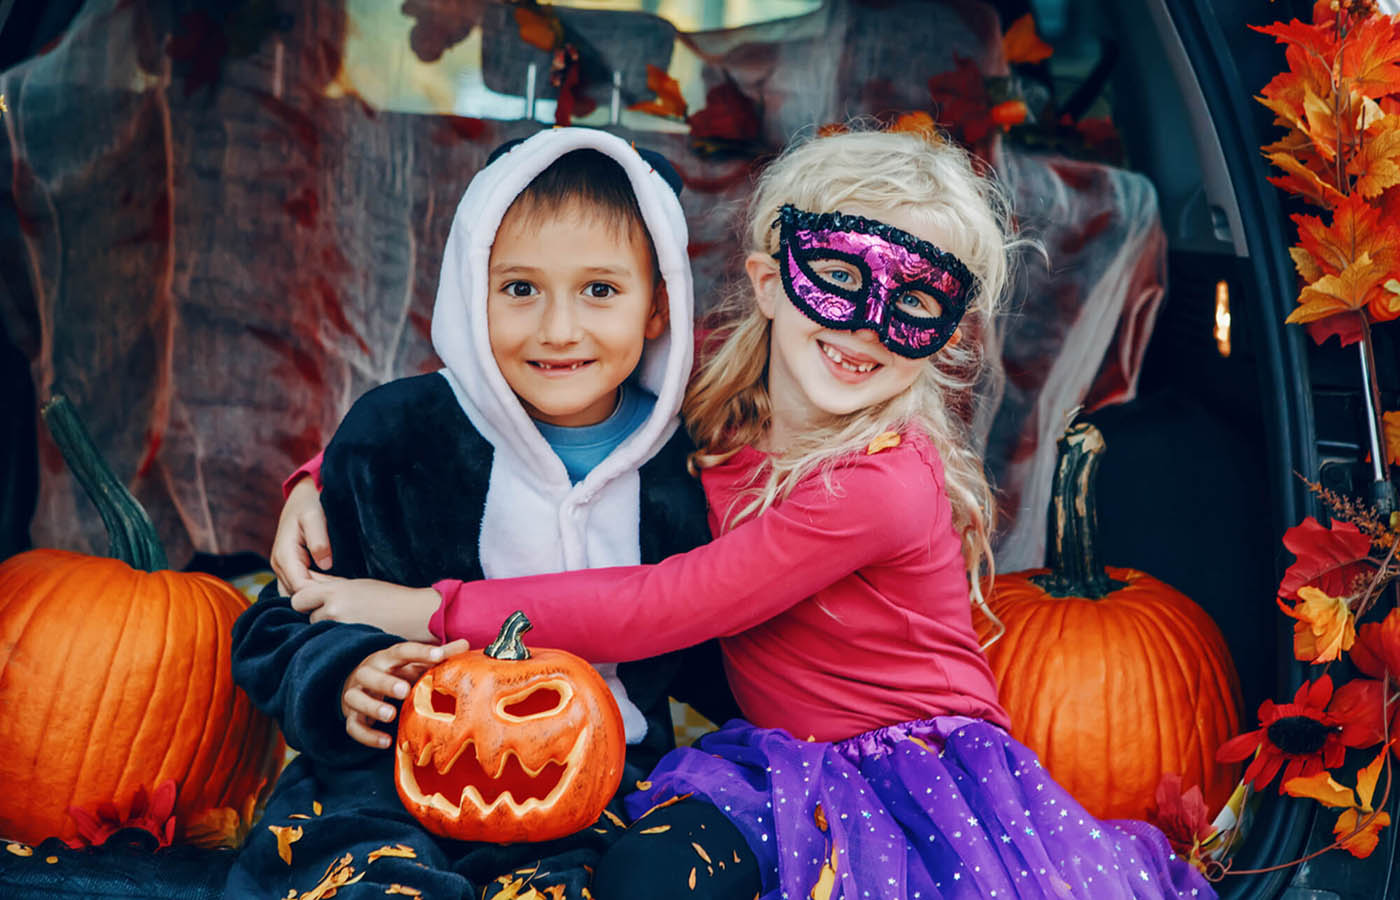 Trunk or Treats and Outdoor Halloween Events in Middle Tennessee